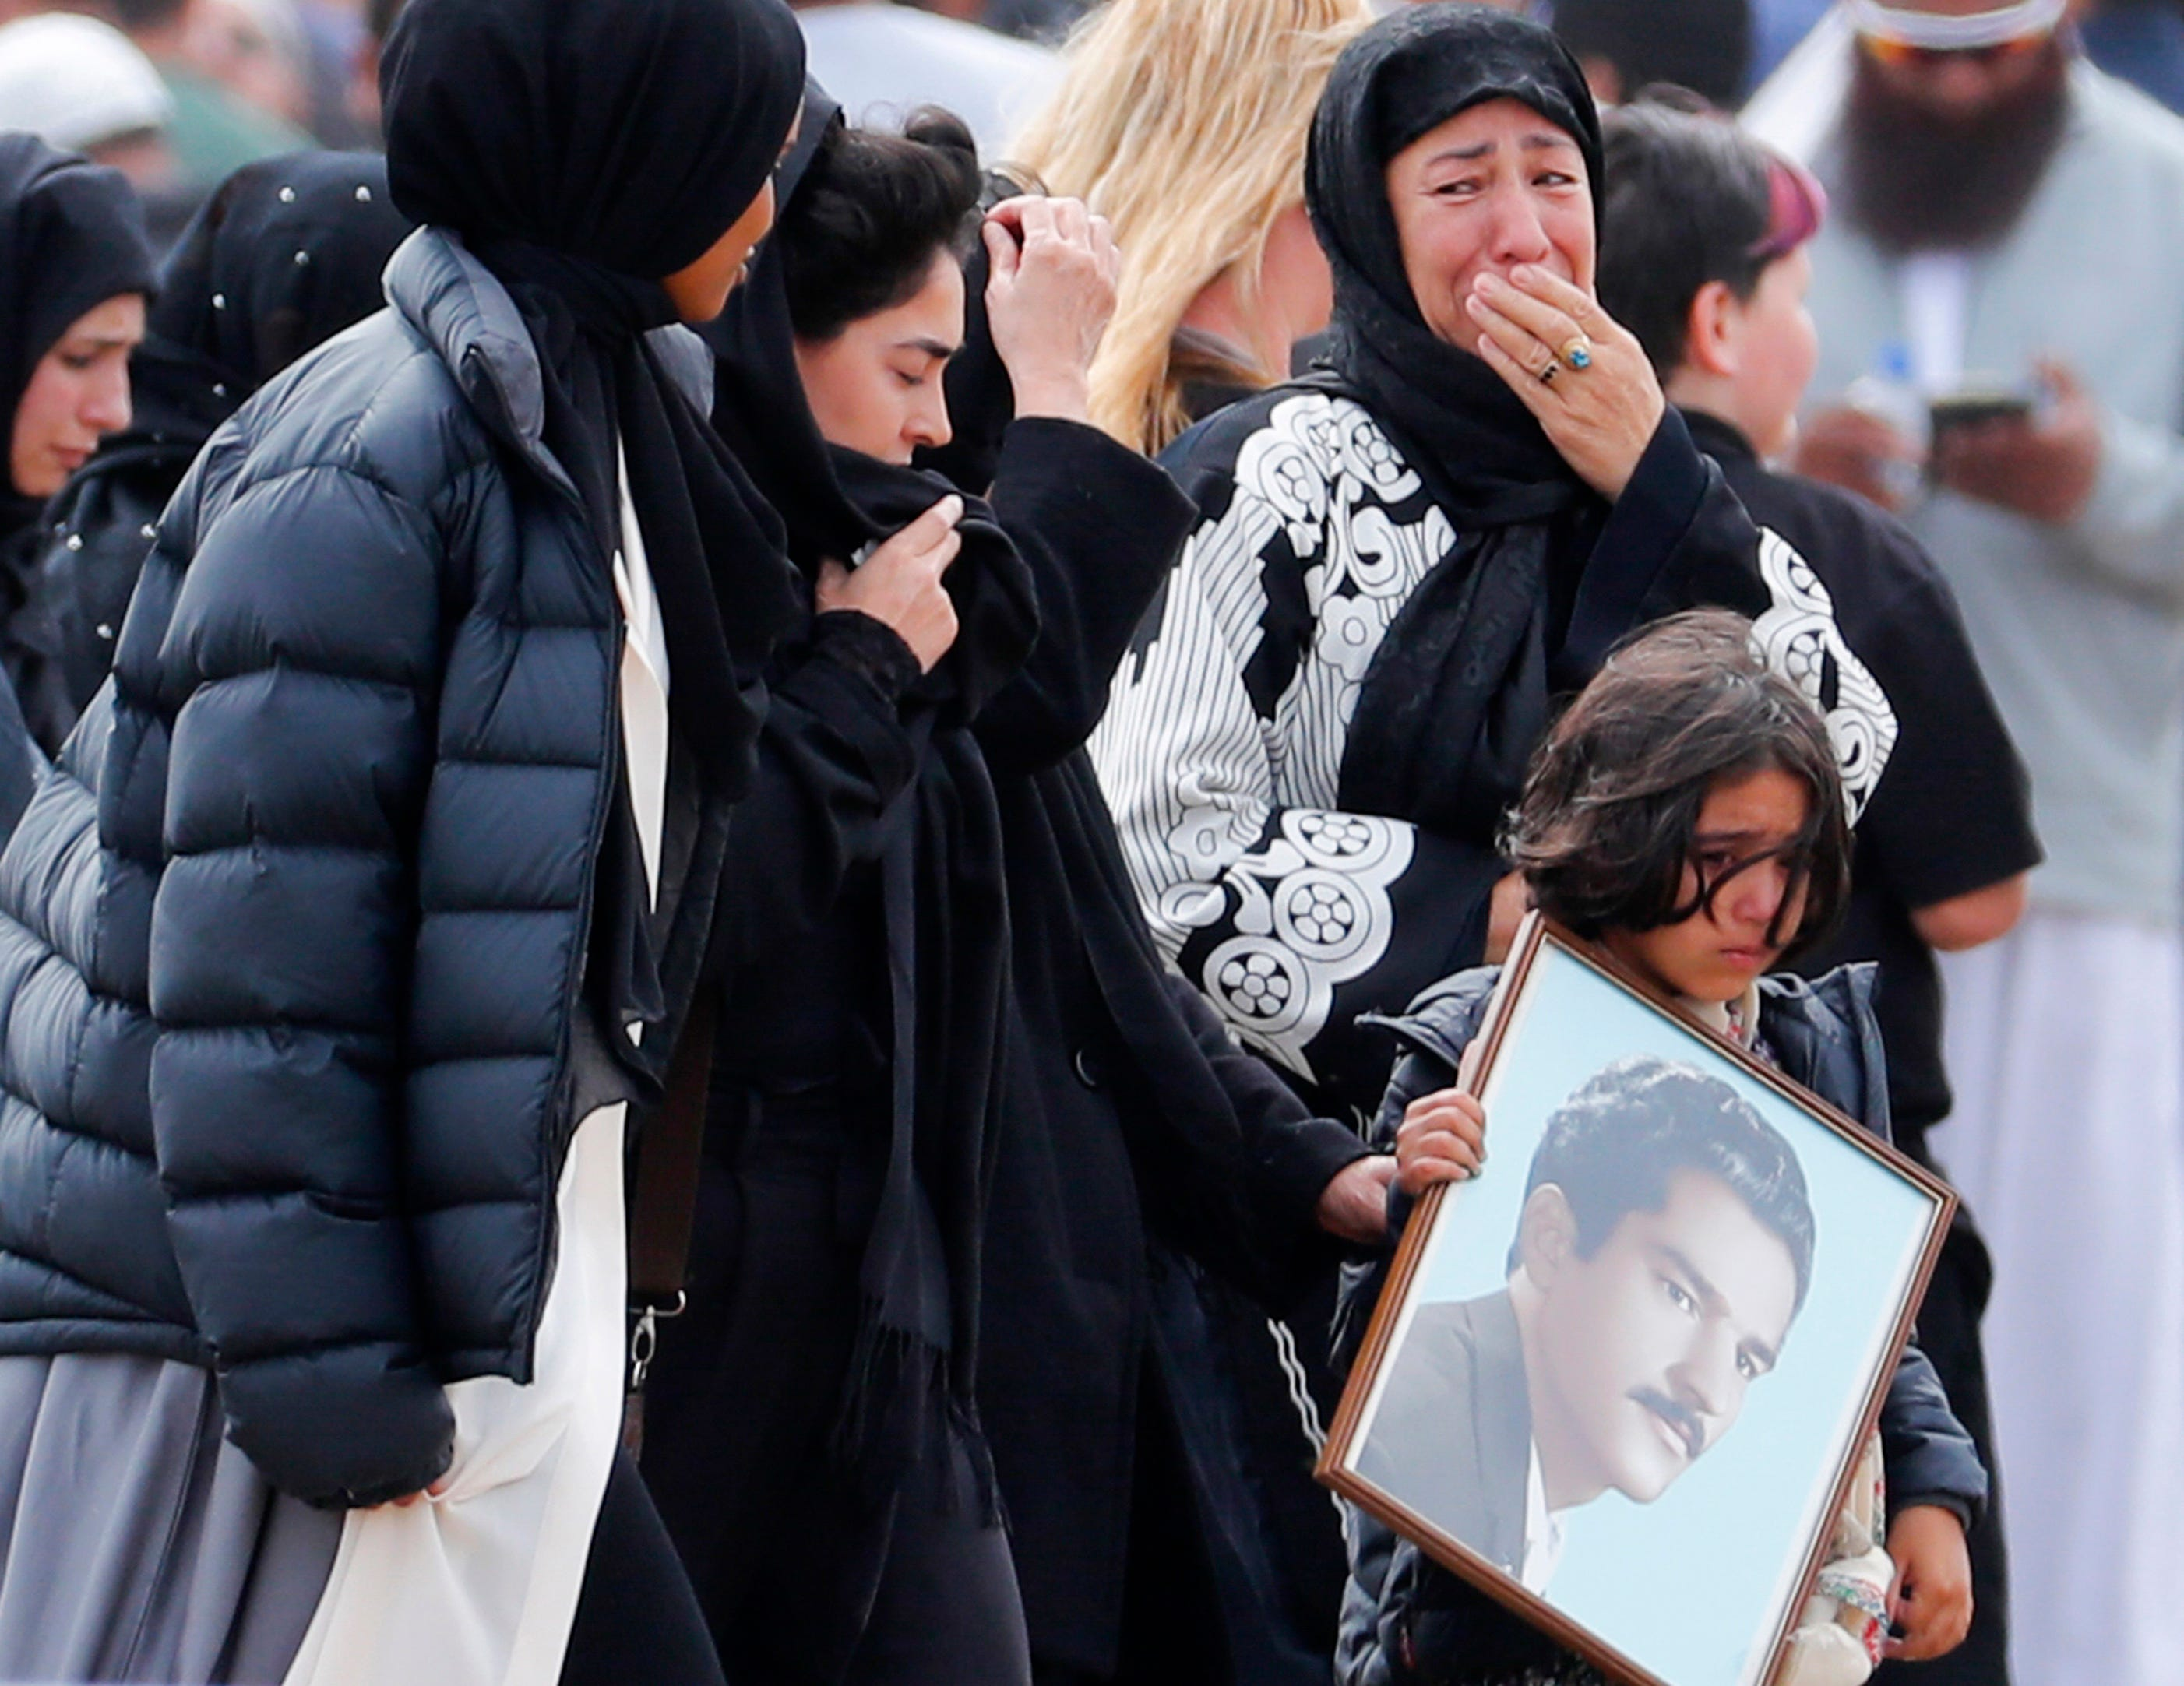 Mourners arrive for a burial service of a victim from the March 15 mosque shootings at the Memorial Park Cemetery in Christchurch, New Zealand, Thursday, March 21, 2019.